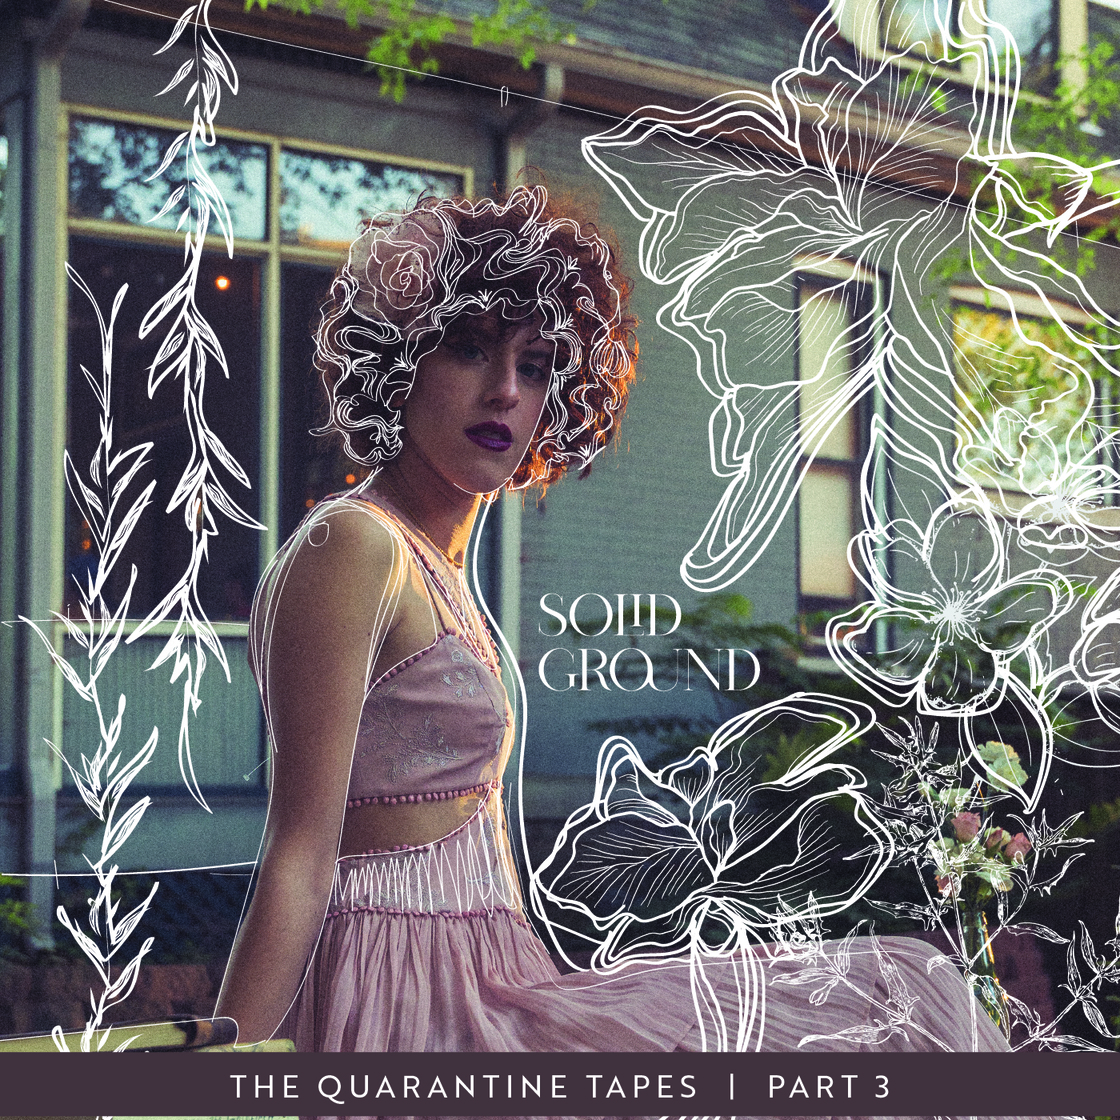 """Album cover for """"Sold Ground"""" by Marta Palombo. Artist is sitting on a ledge with swirling white lines around the floral cottage background."""